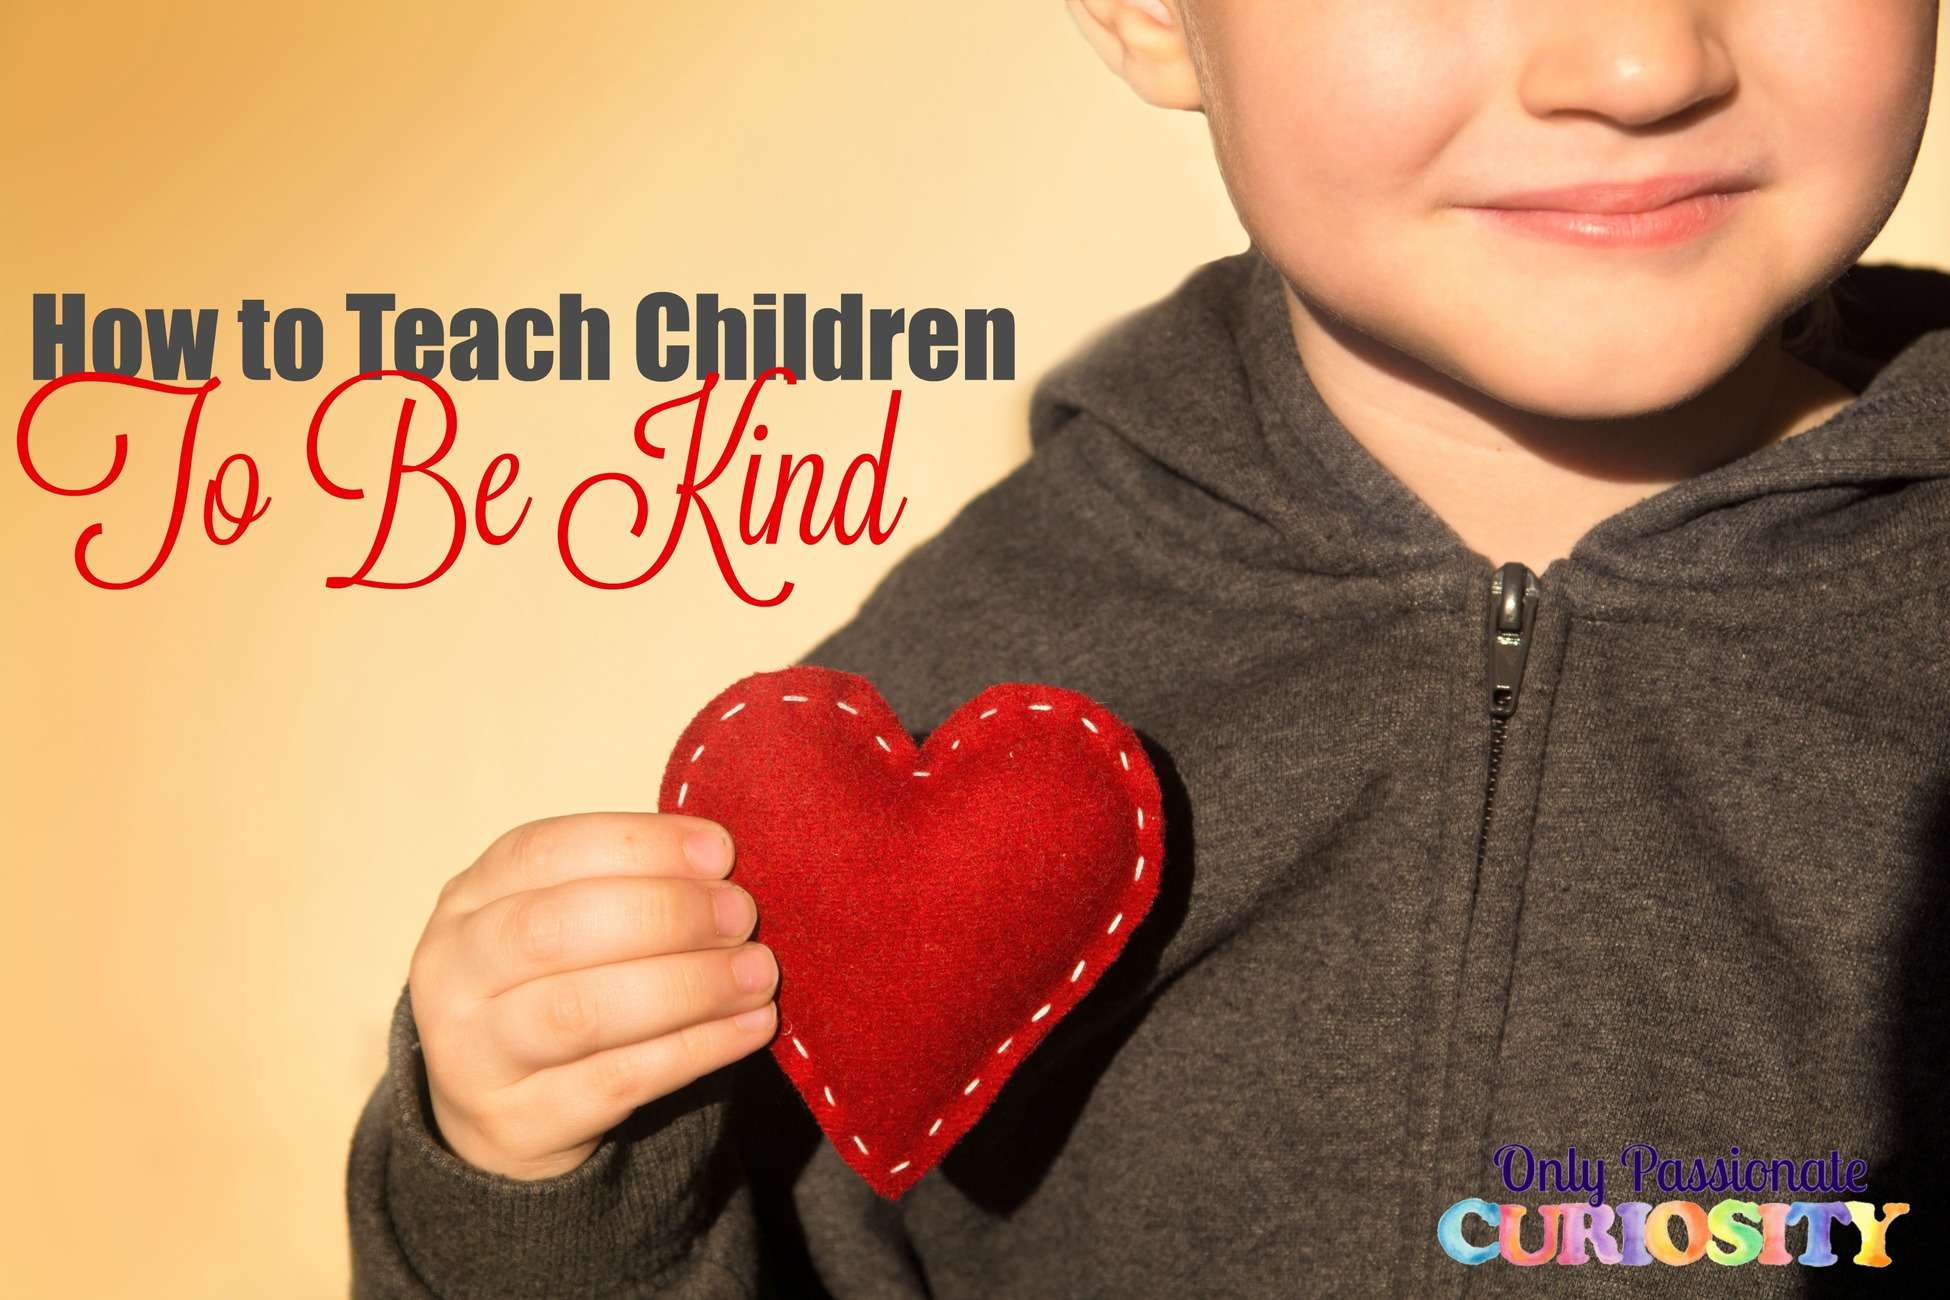 Cultivating Kindness in Your Kids